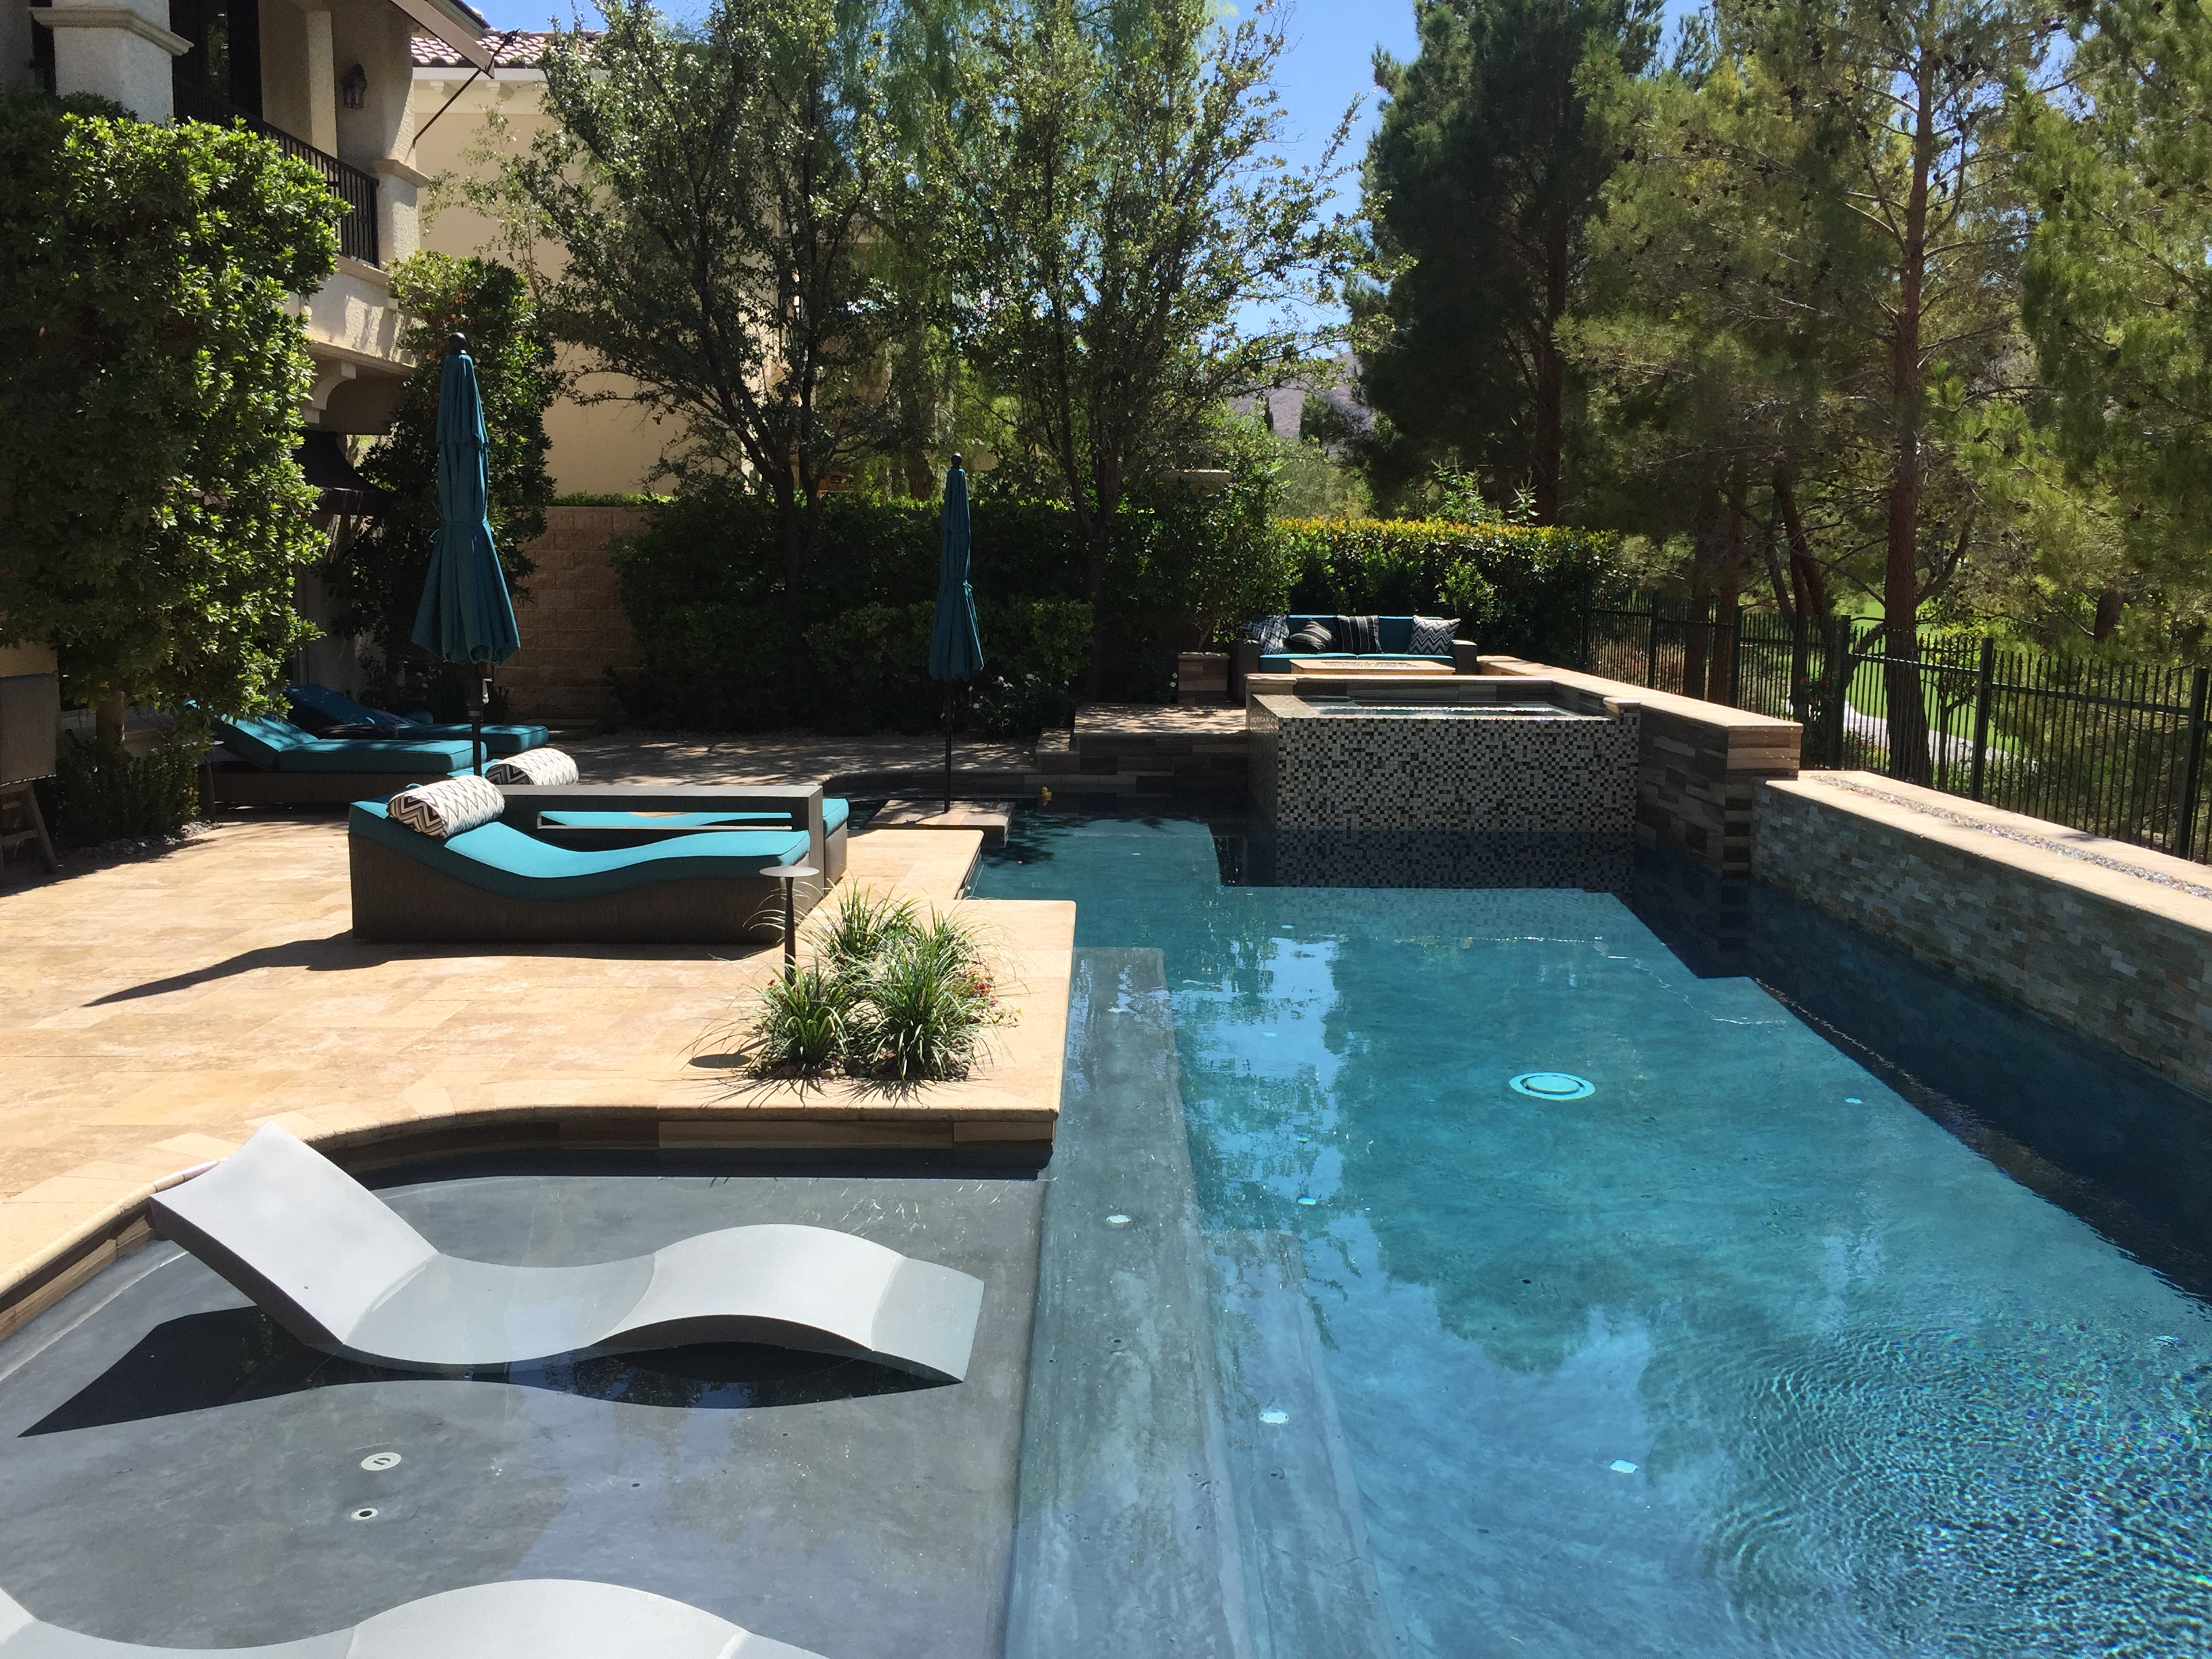 Las Vegas Backyard Landscaping Design Brilliant Backyard Resort  Las Vegas Pool Design Pool Contractor Pool . Decorating Design